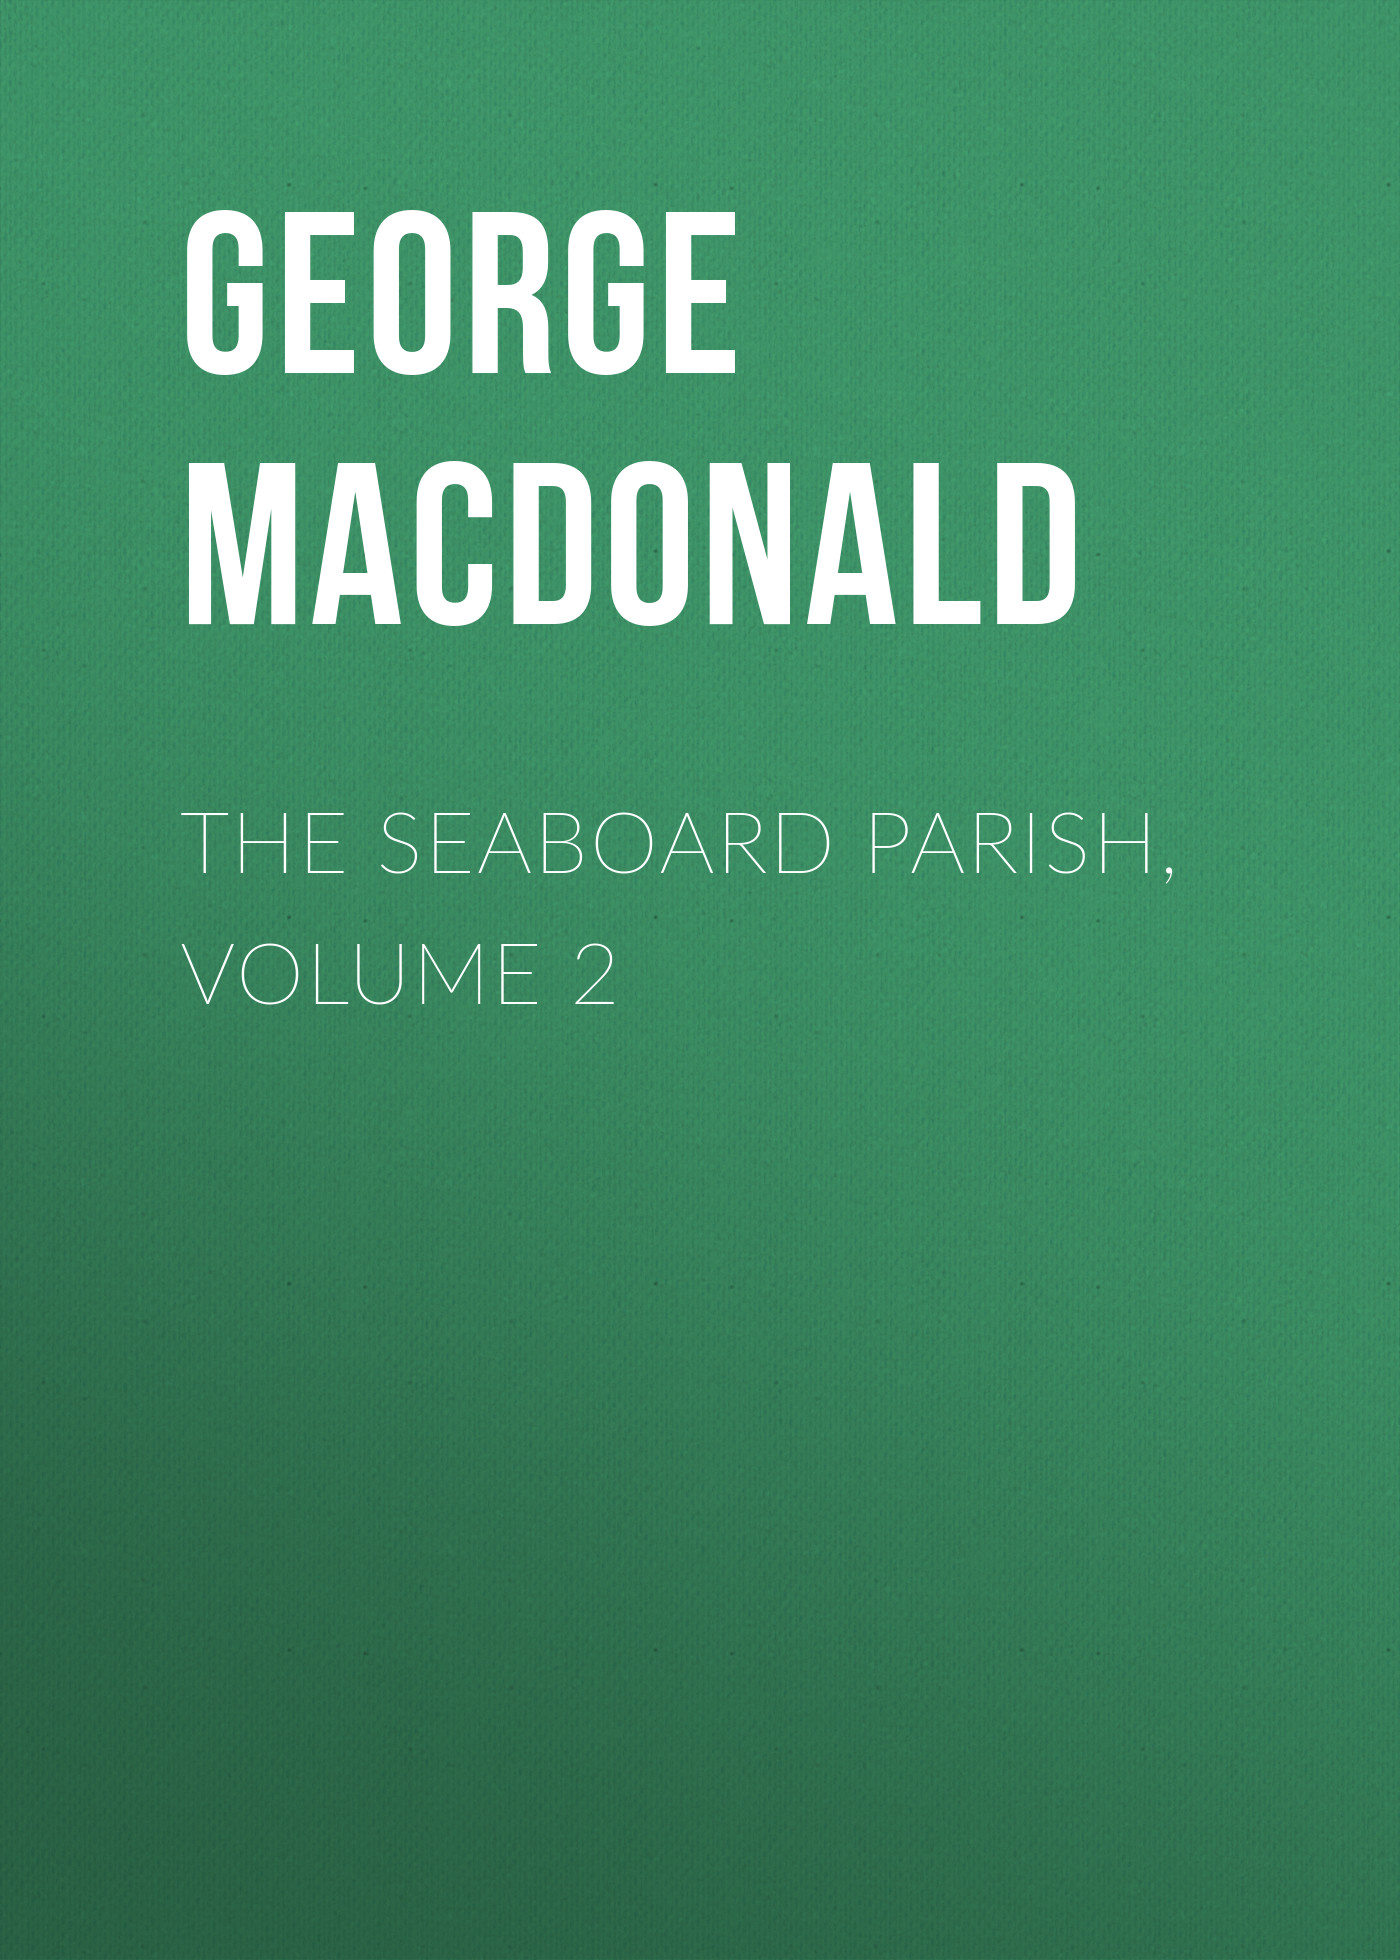 George MacDonald The Seaboard Parish, Volume 2 george macdonald the poetical works of george macdonald in two volumes volume 1